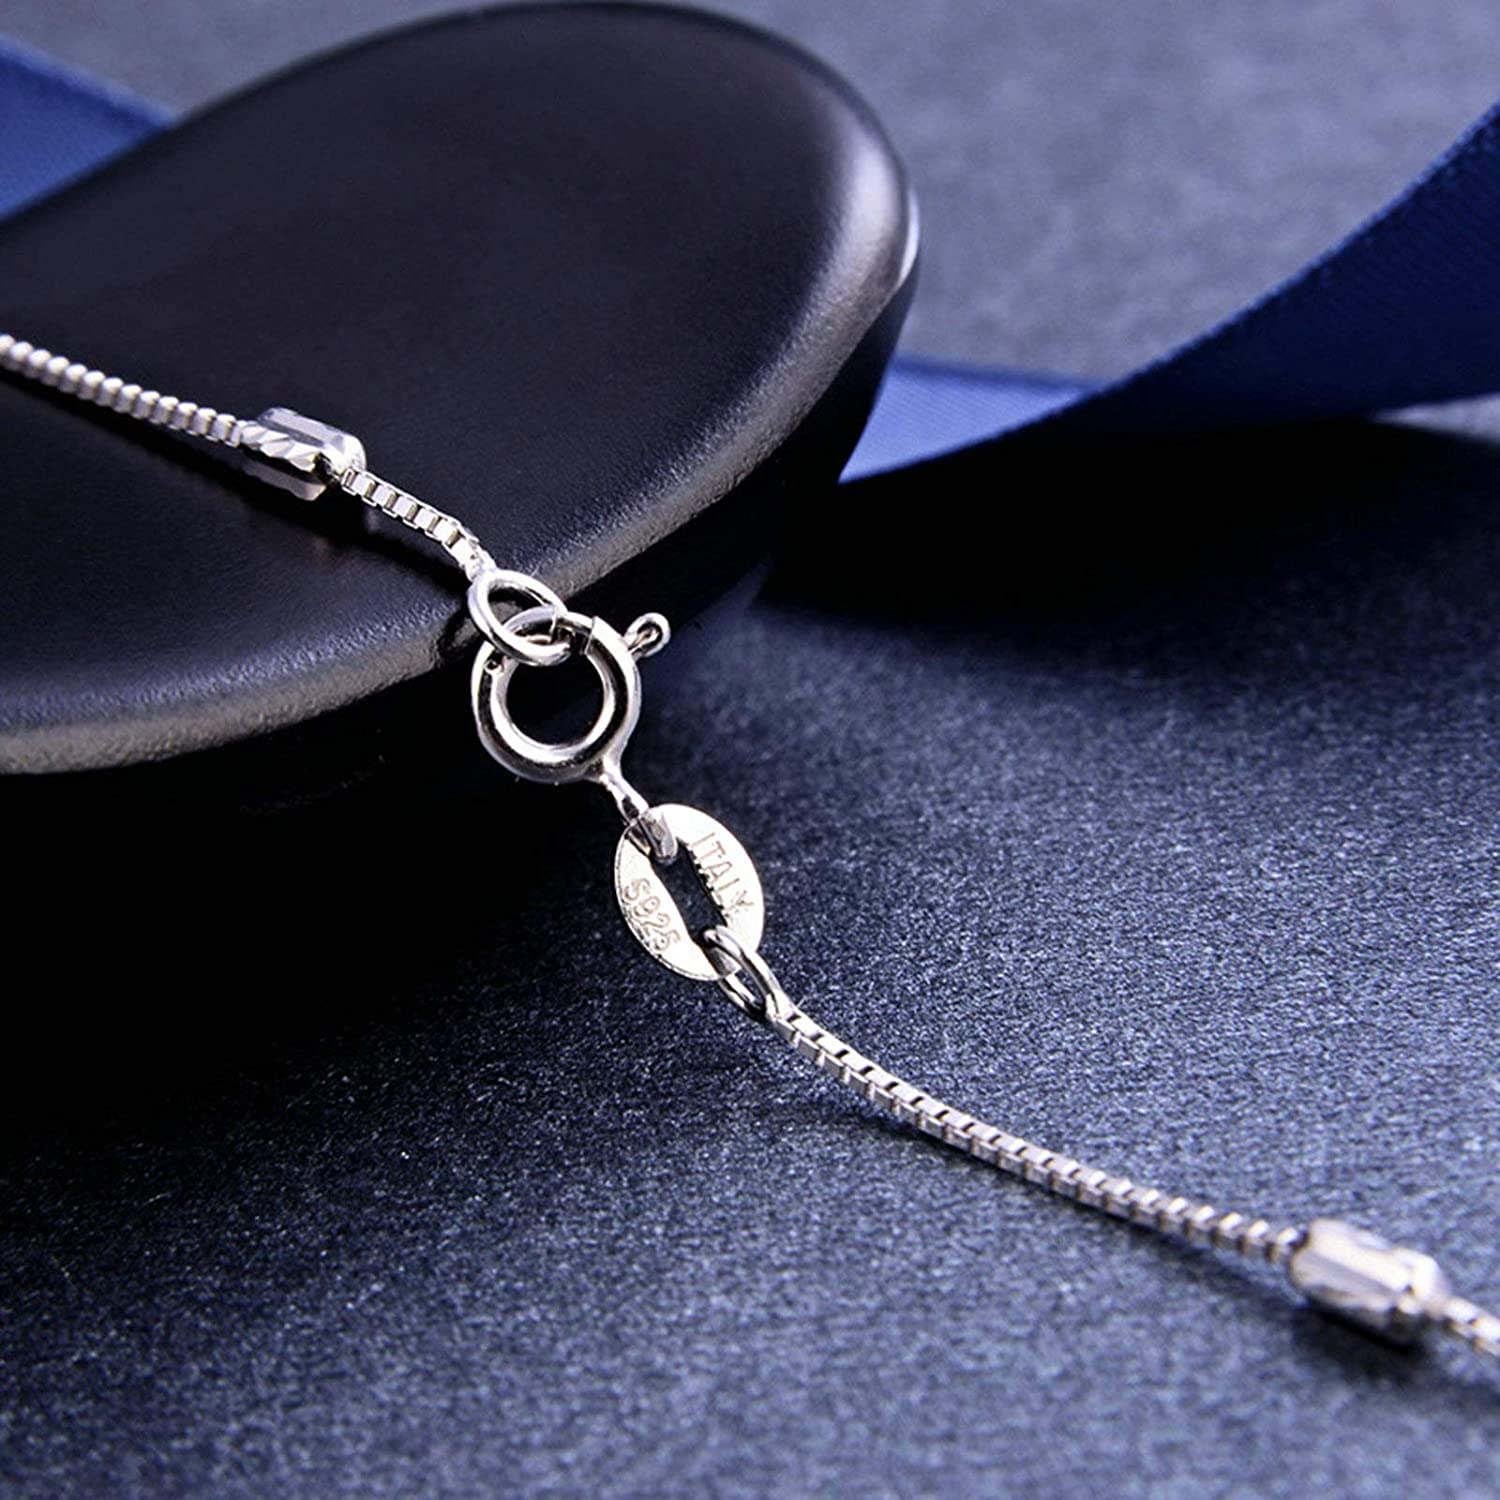 KnSam Chain Necklaces Women Silver Chain Silver Necklace Chain 45Cm Pearl Necklace for Girls